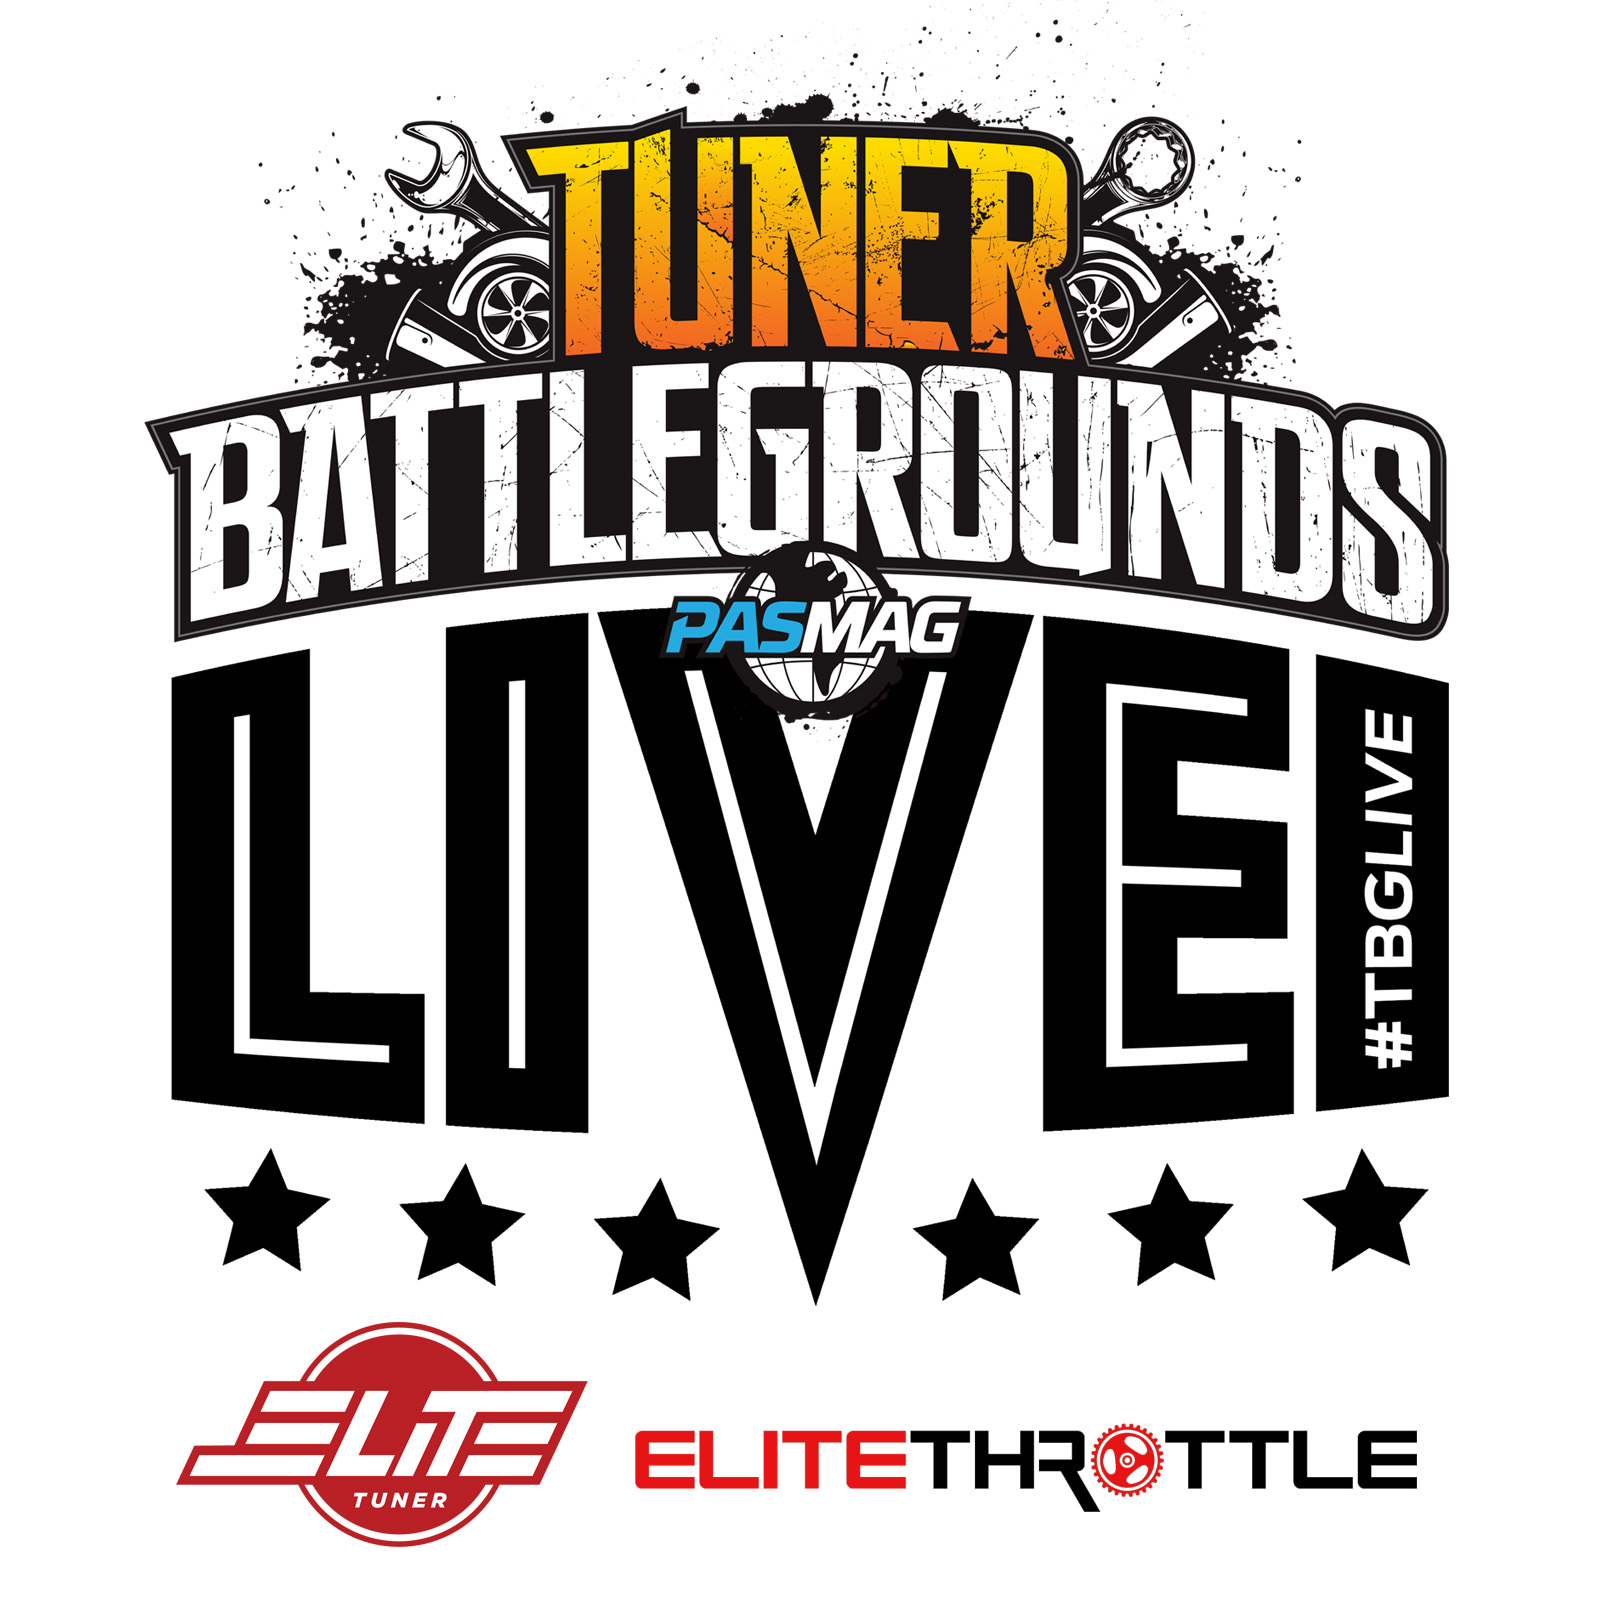 Tuner Battlegrounds TBGLIVE Elite Showdown 2017 logo